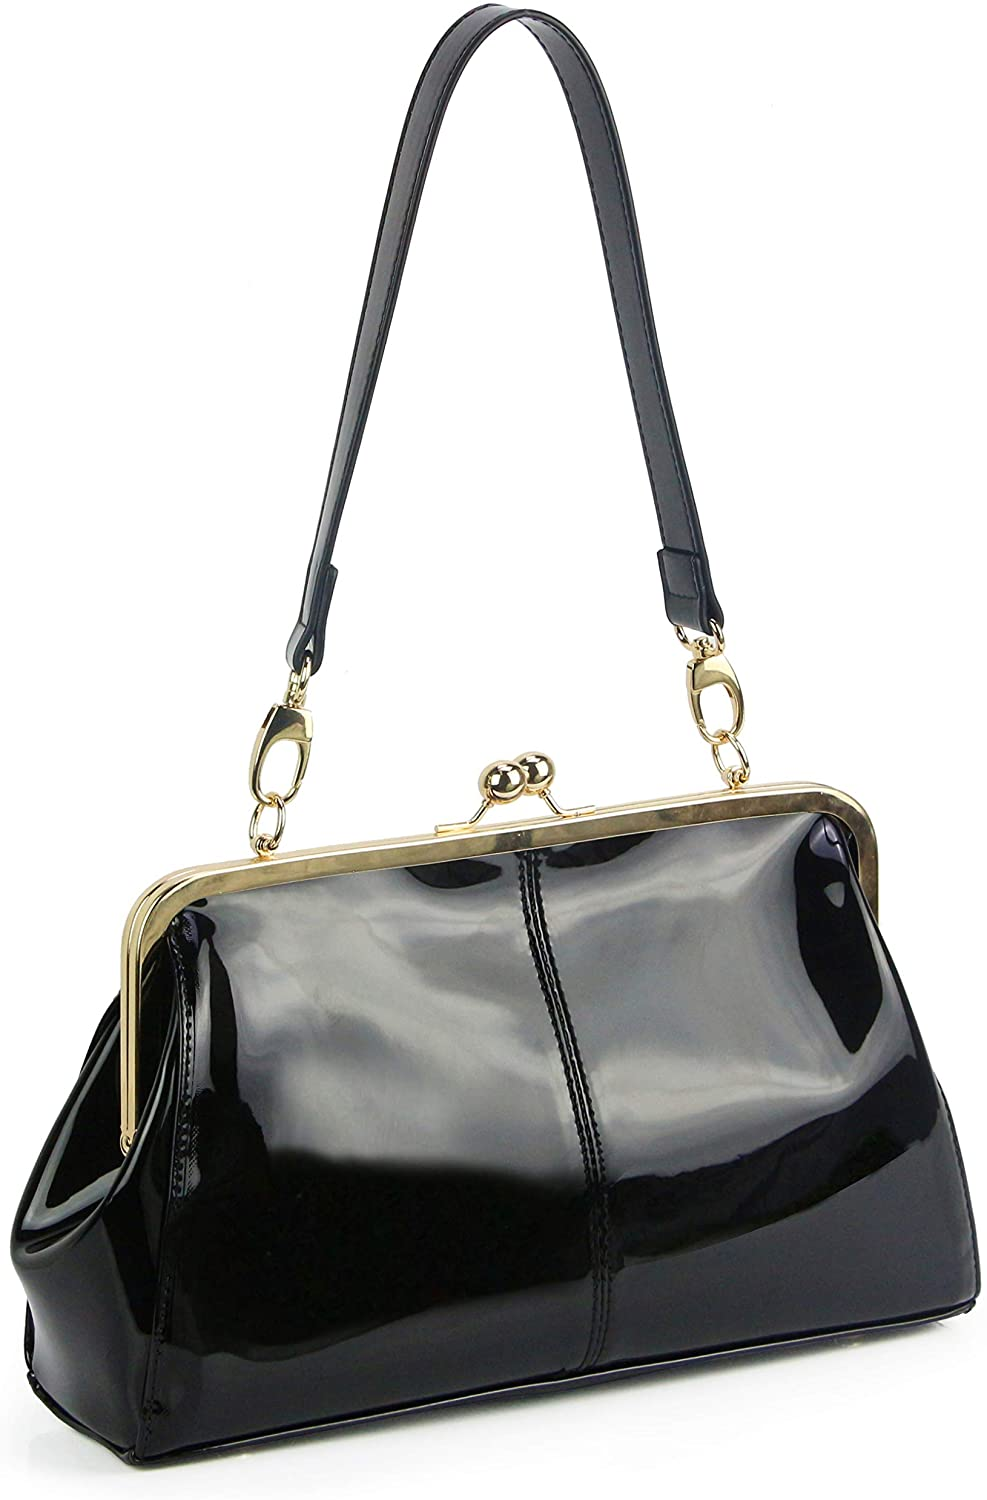 Womens Shiny Patent Leather Handbag Ladies Purse Shoulder Evening Clutch Bags with Removable Strap